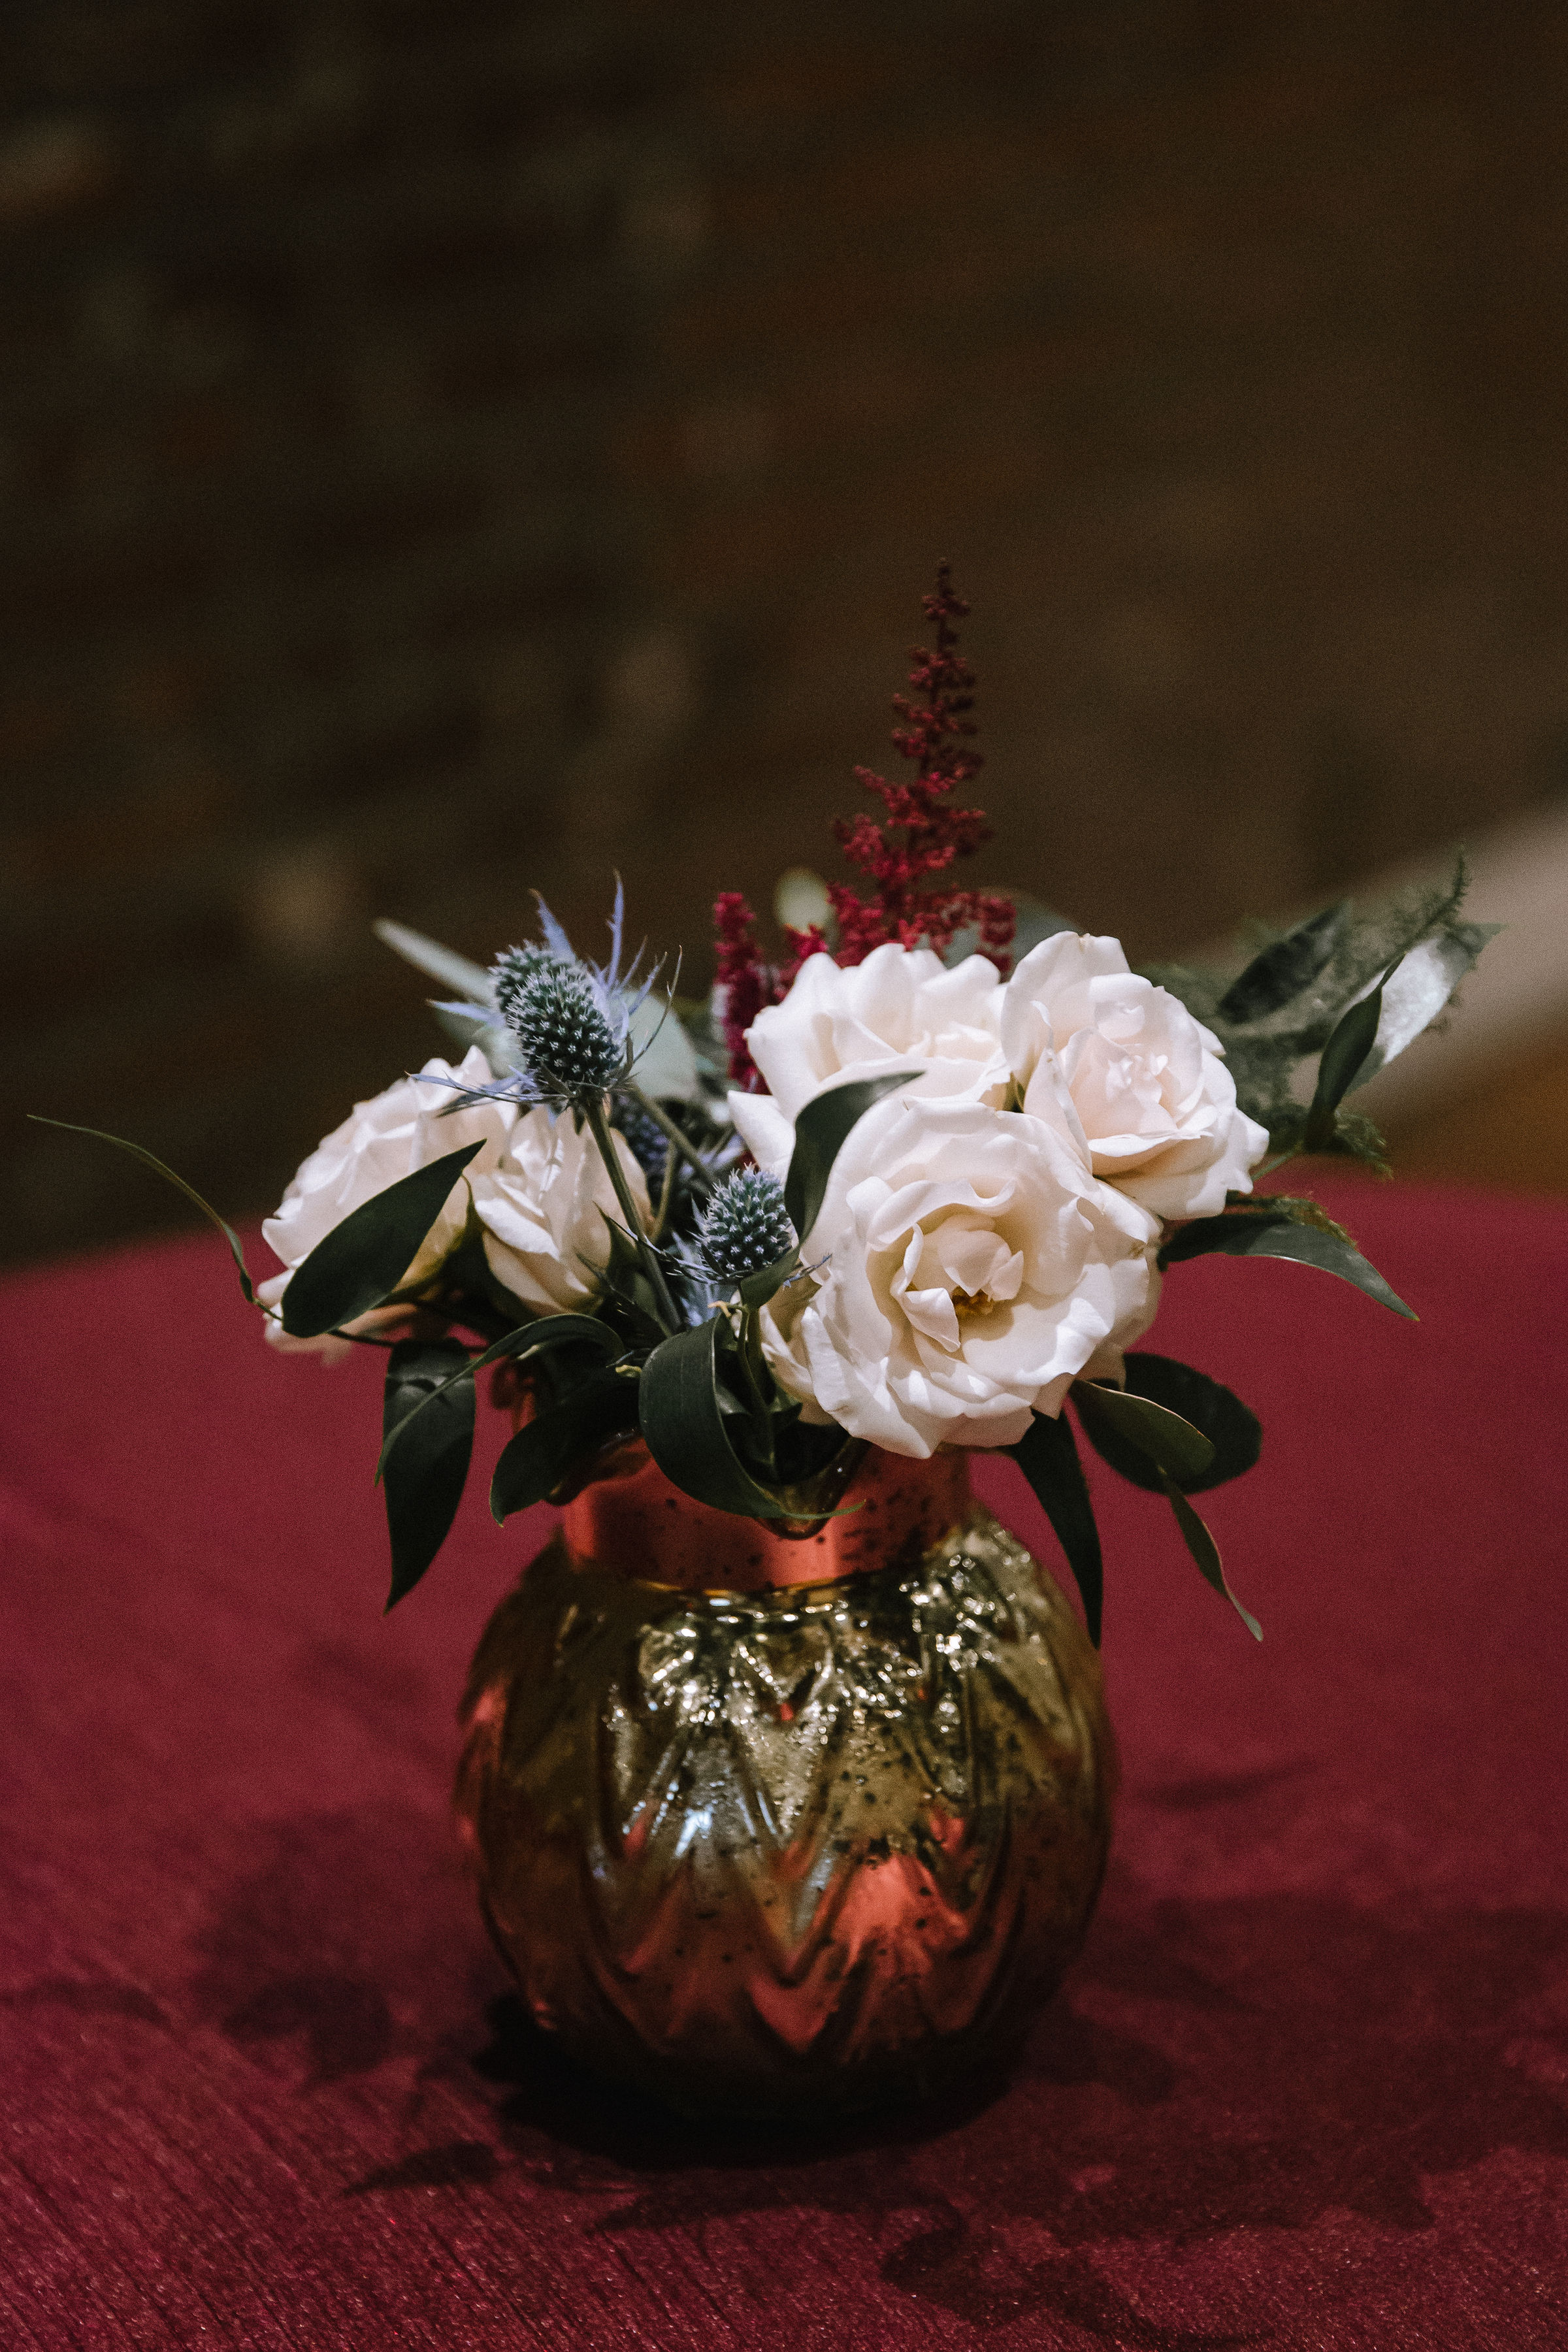 Wedding centerpieces for Pittsburgh wedding at Studio Slate planned by Exhale Events. Find more wedding inspiration at exhale-events.com!